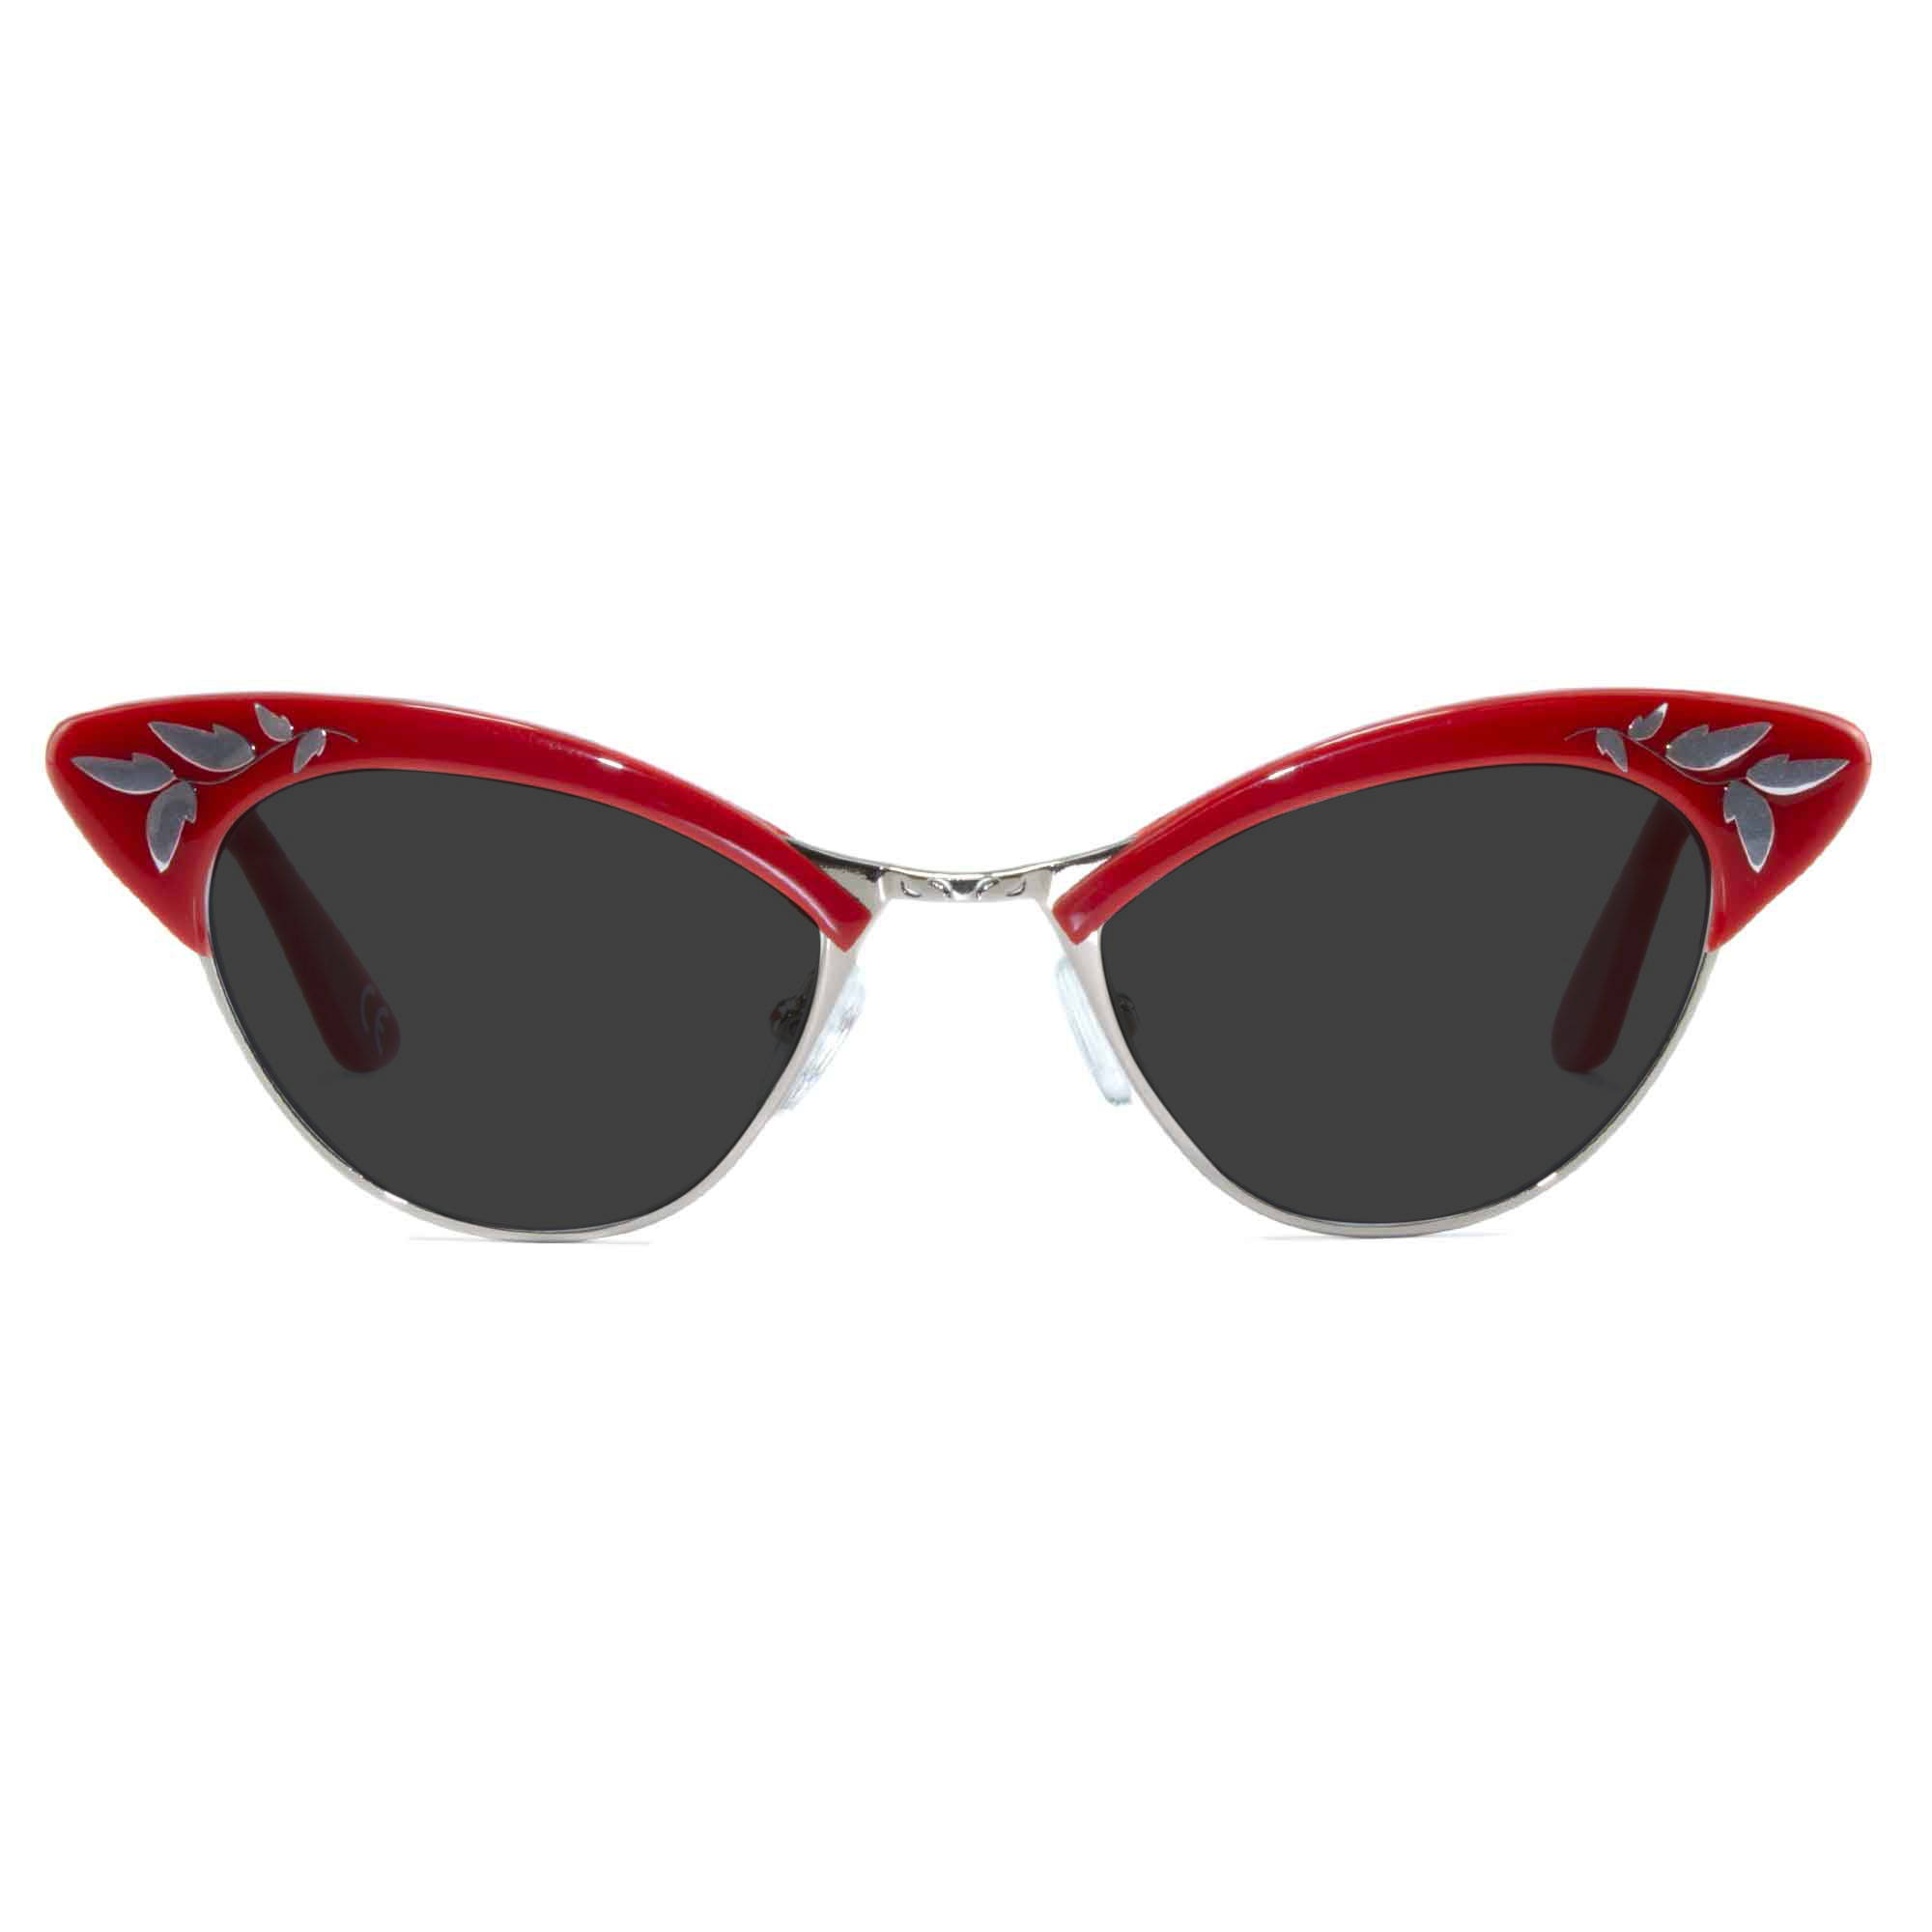 Joiuss rita red cat eye sunglasses